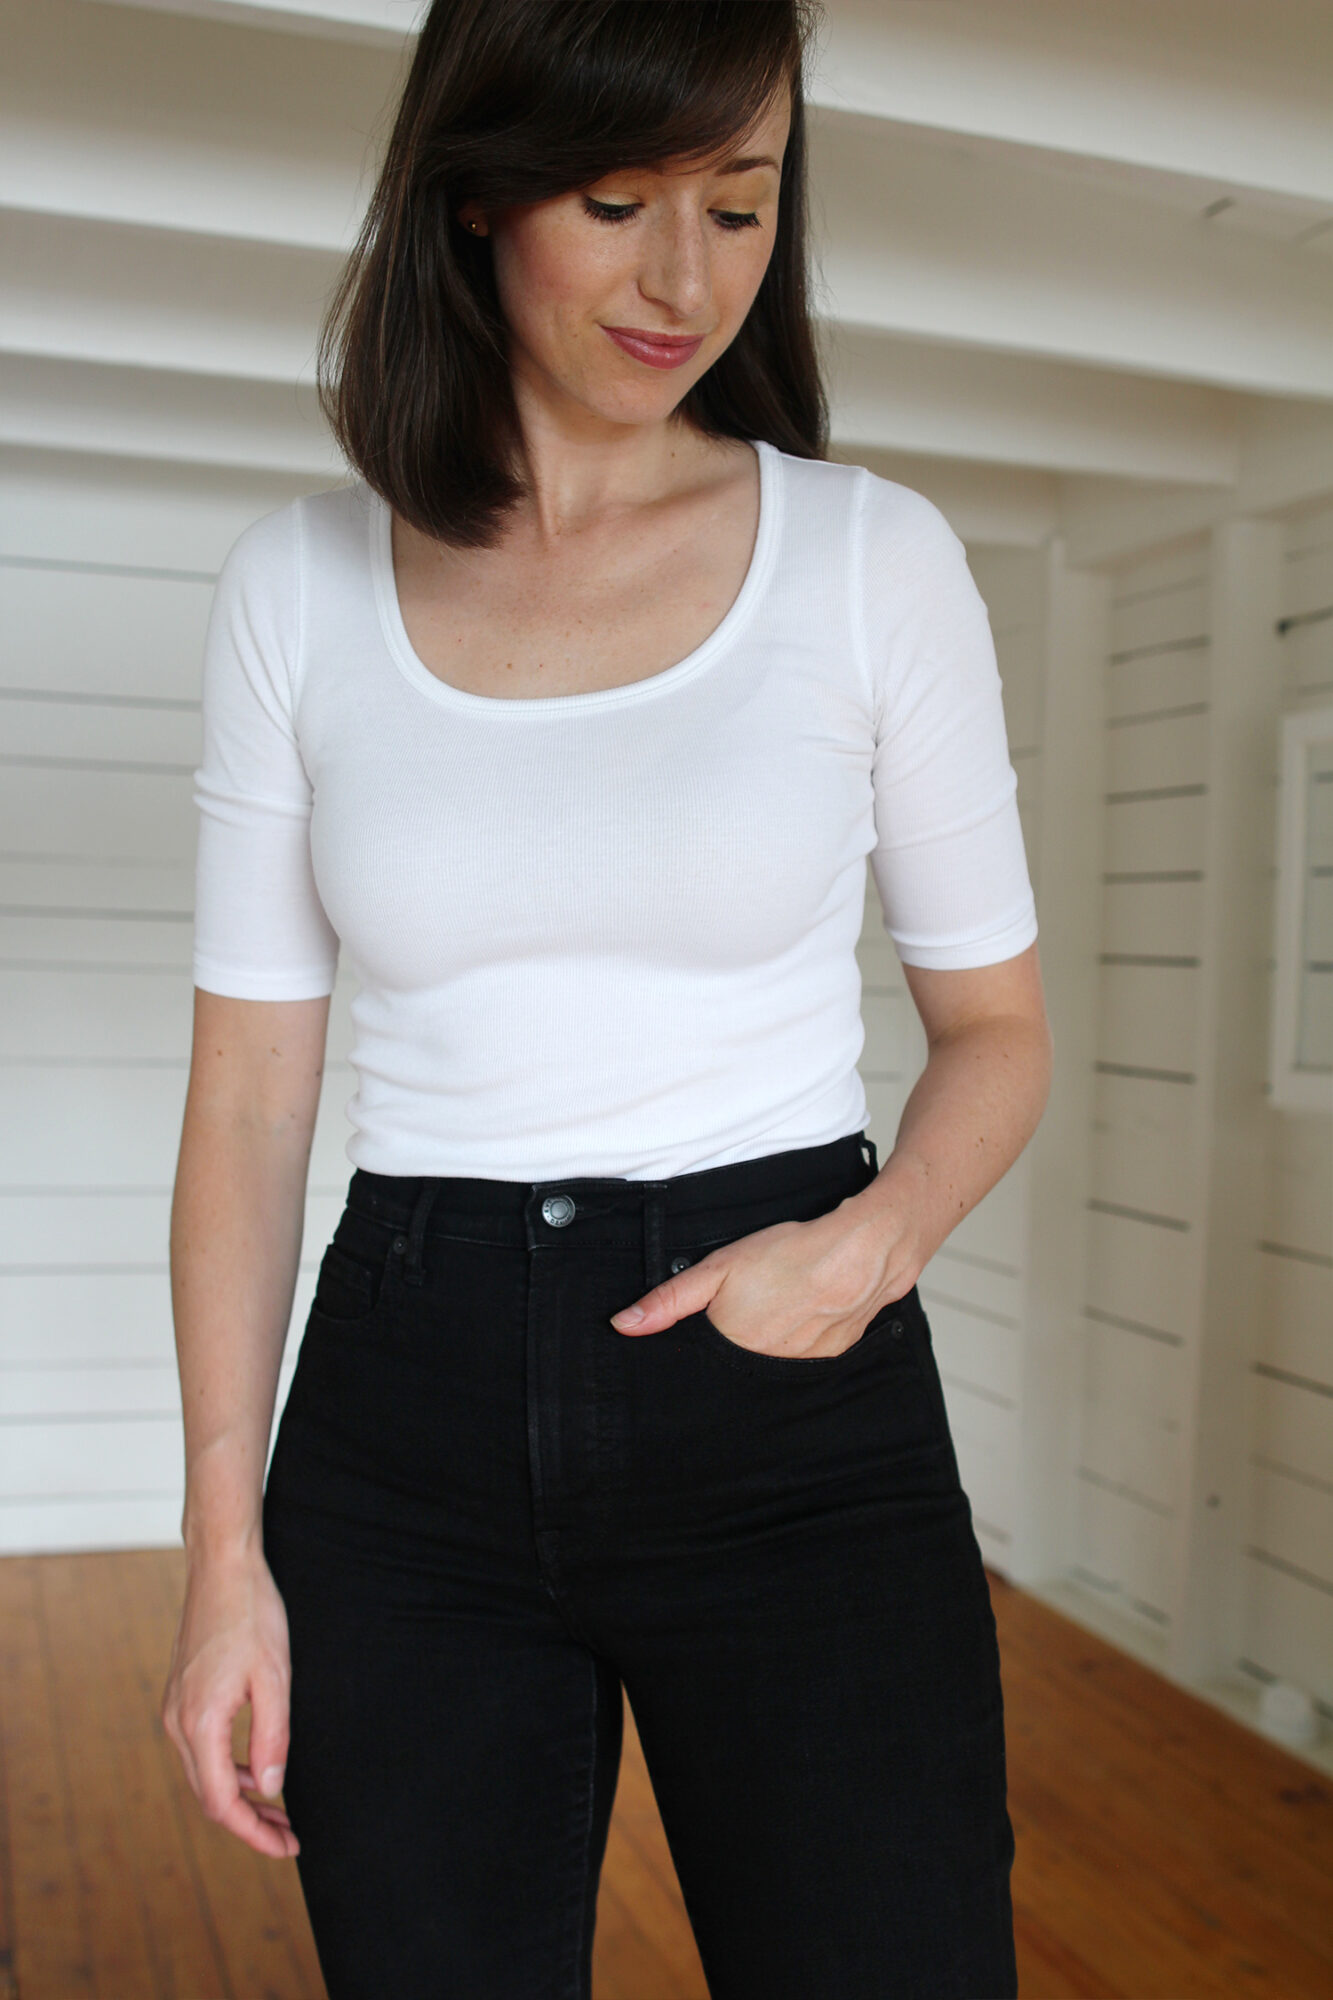 Style Bee - My Favourite Black Skinny Jeans - A Review